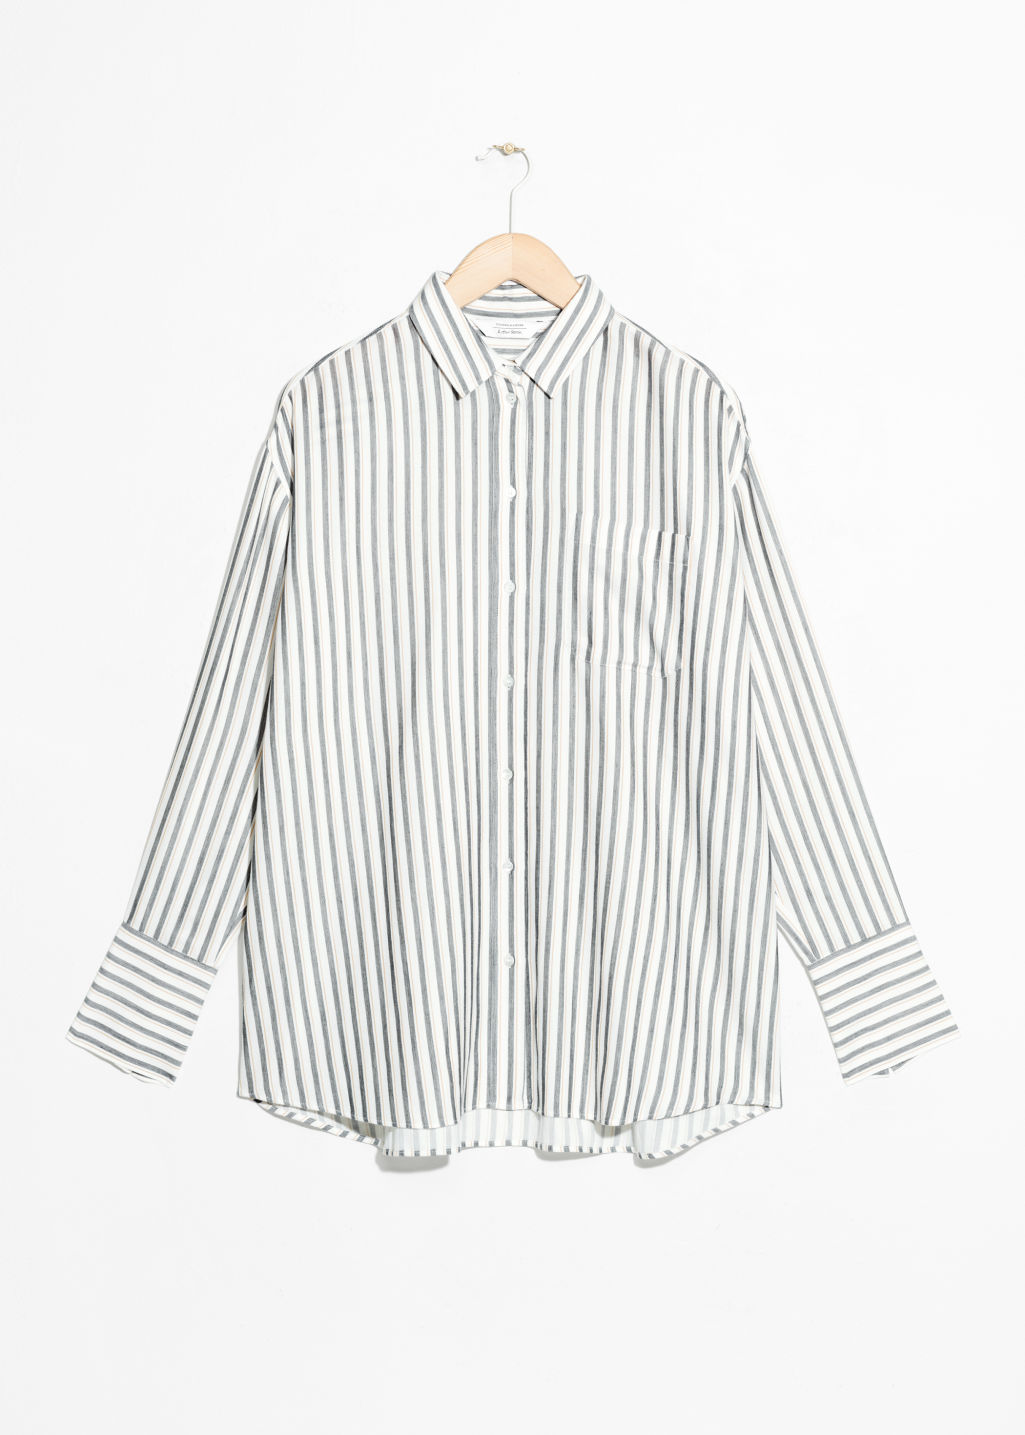 85d5336da Oversized Button Up Shirt - White - Shirts - & Other Stories